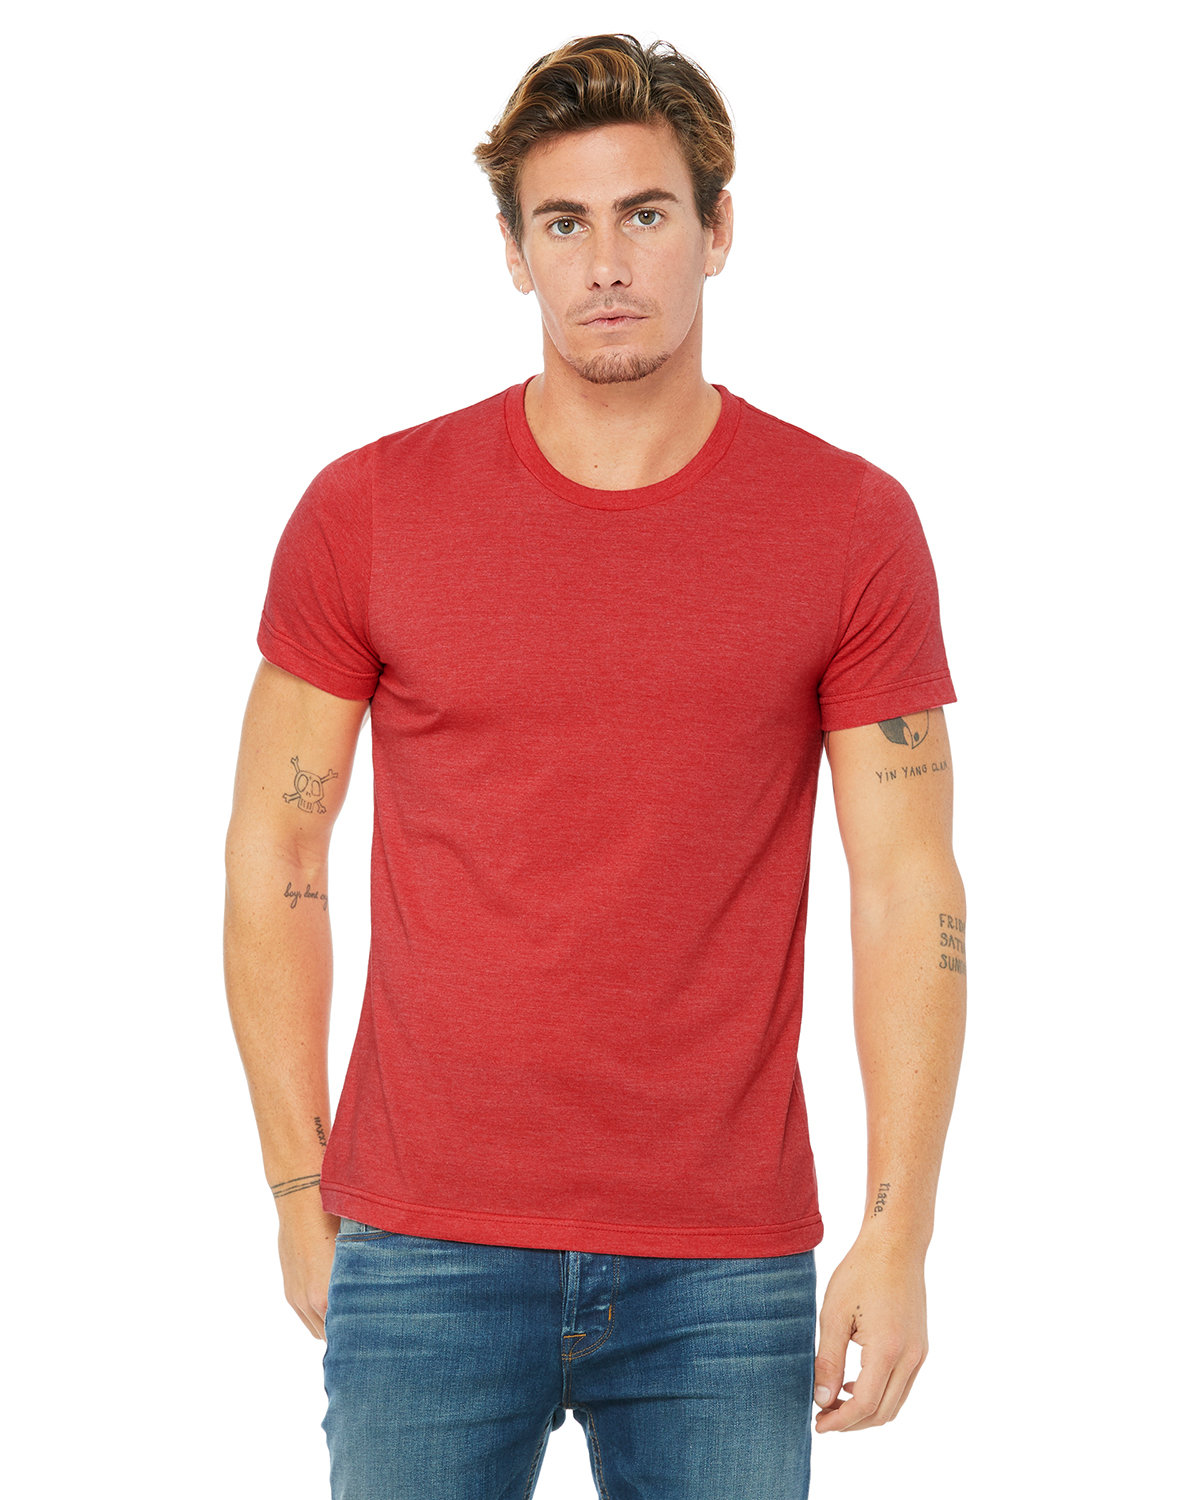 Bella + Canvas Unisex Heather CVC T-Shirt HEATHER RED